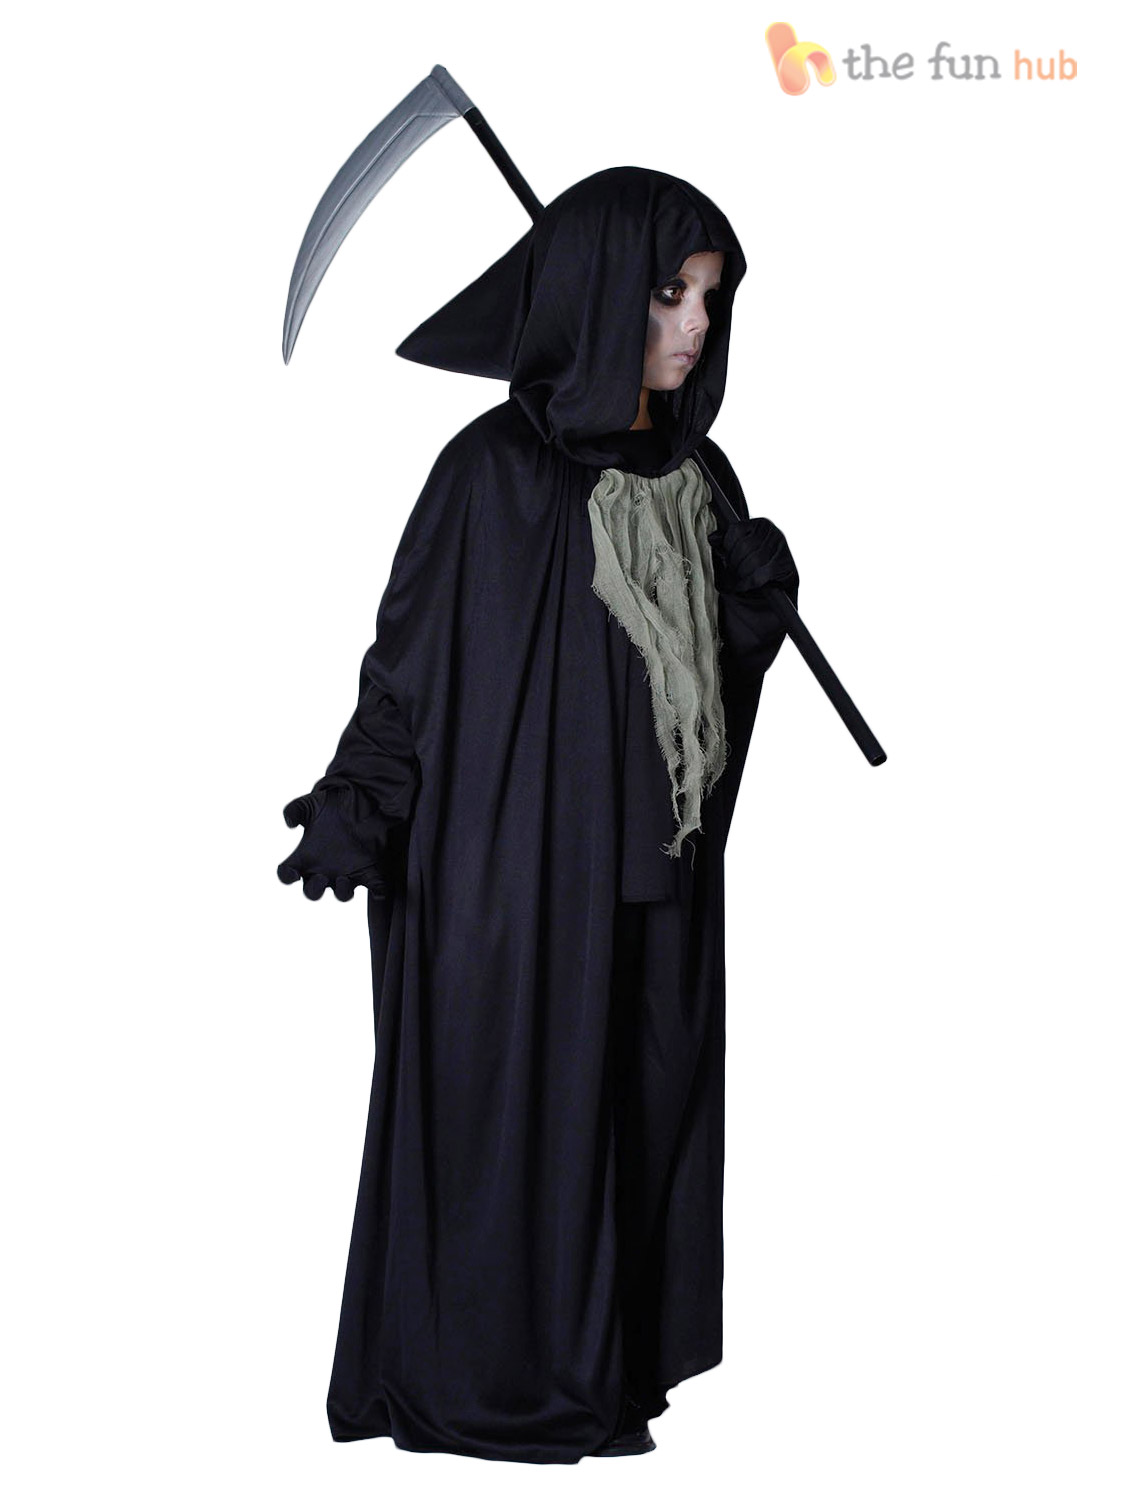 a3d46ce9e3 Boys Grim Reaper Costume Kids Halloween Fancy Dress Childrens Horror ...